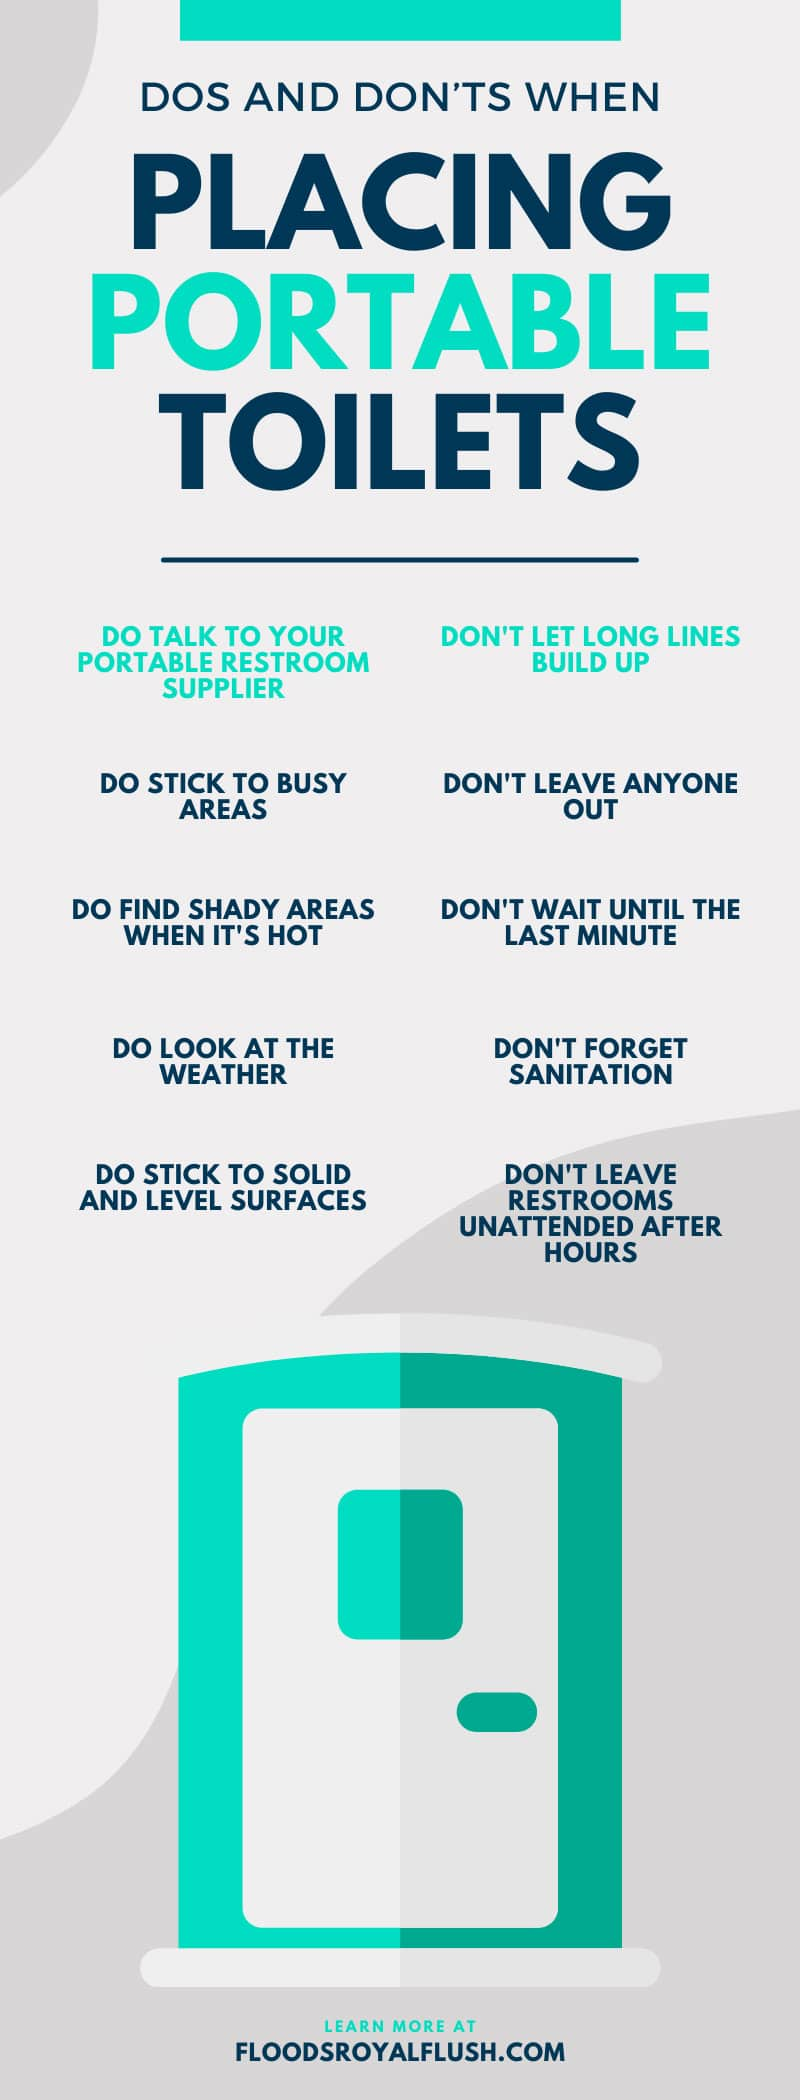 Dos and Don'ts When Placing Portable Toilets